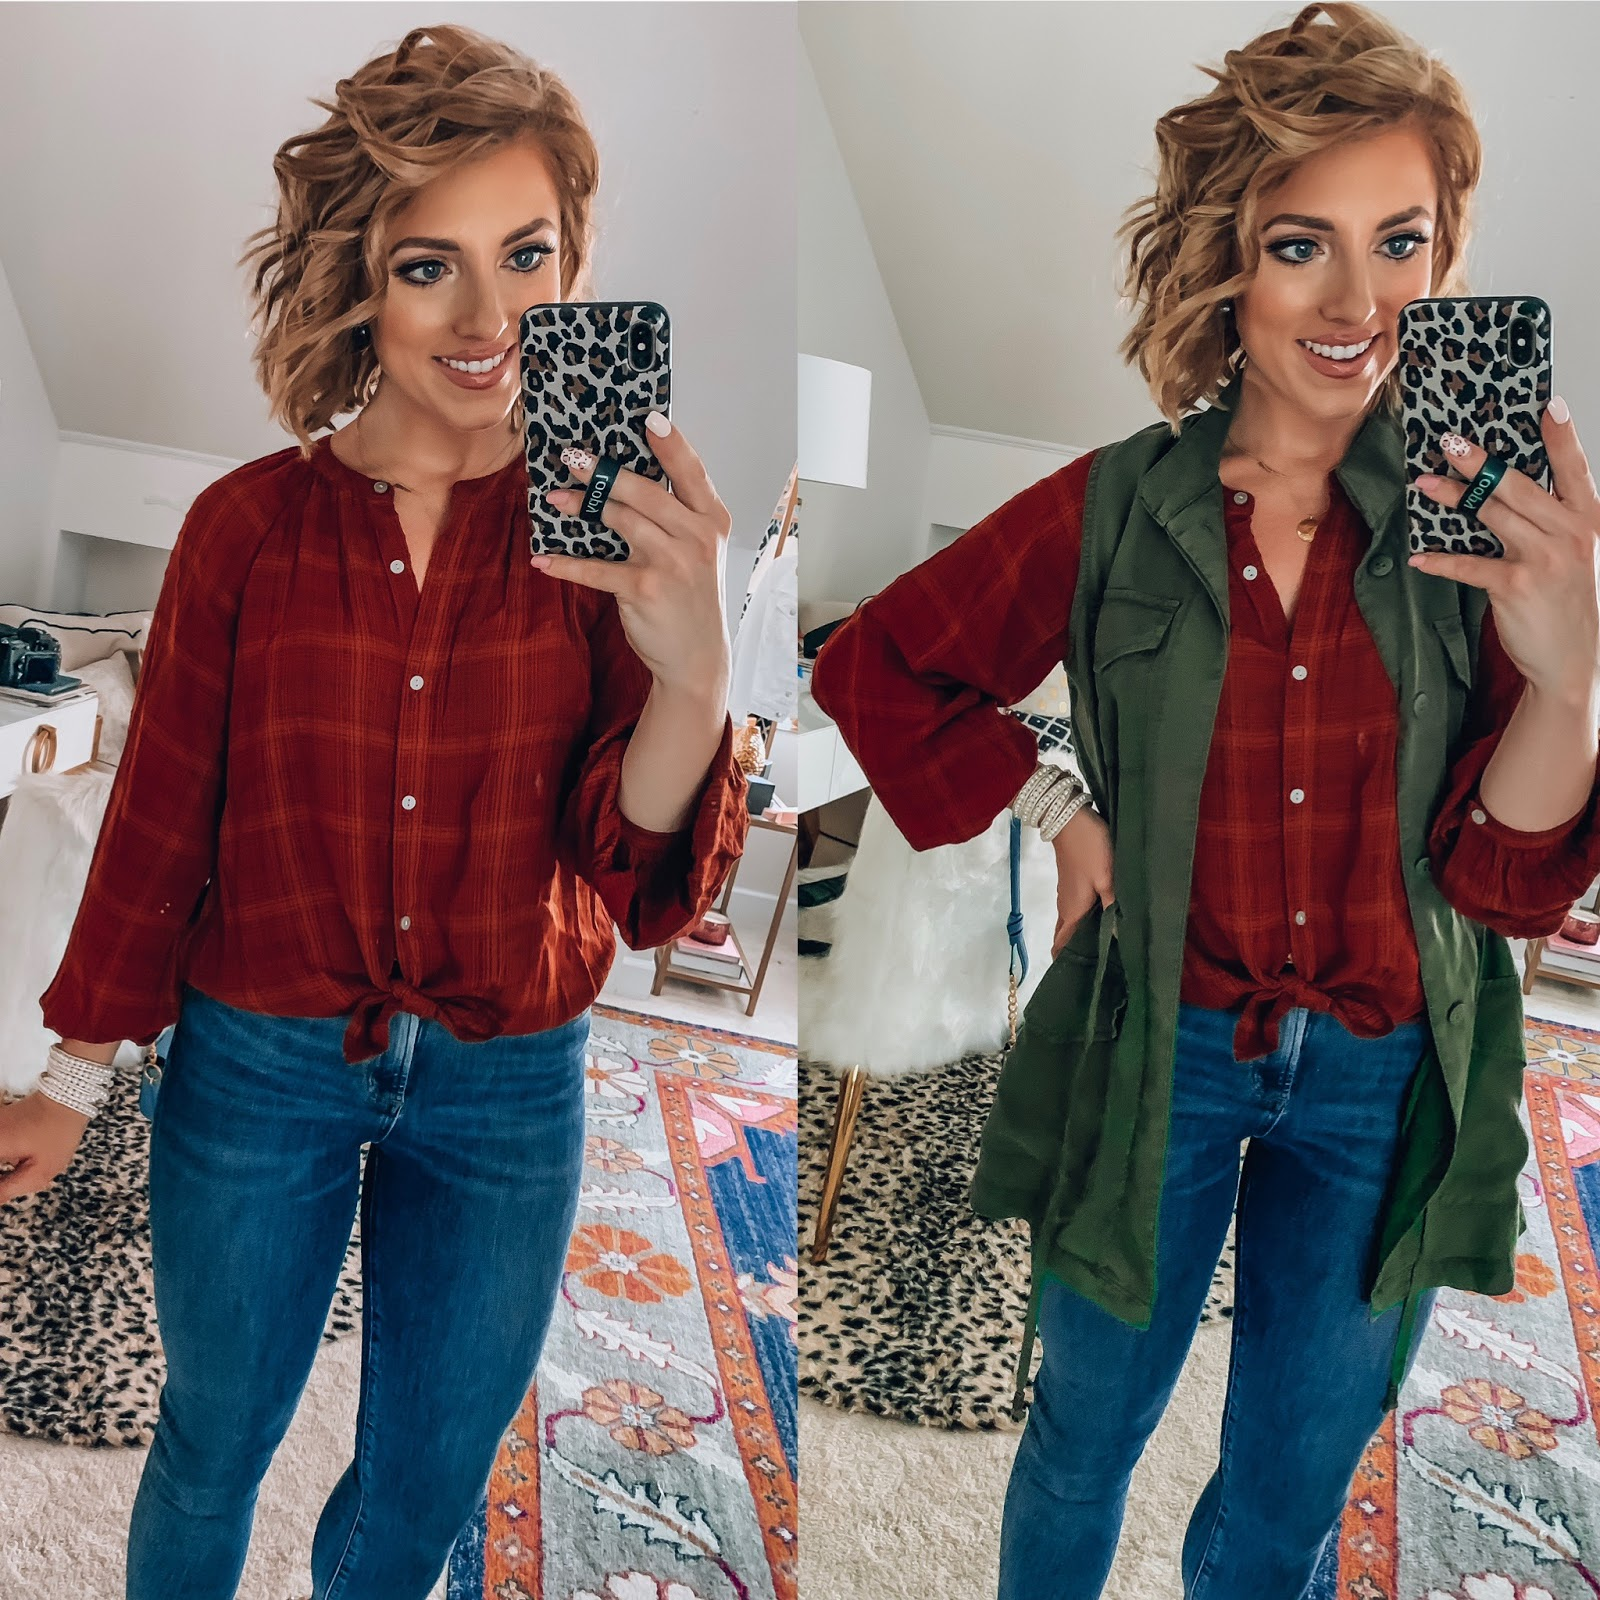 Target Fall Finds: Part One - Plaid Top + Utility Vest - Something Delightful Blog